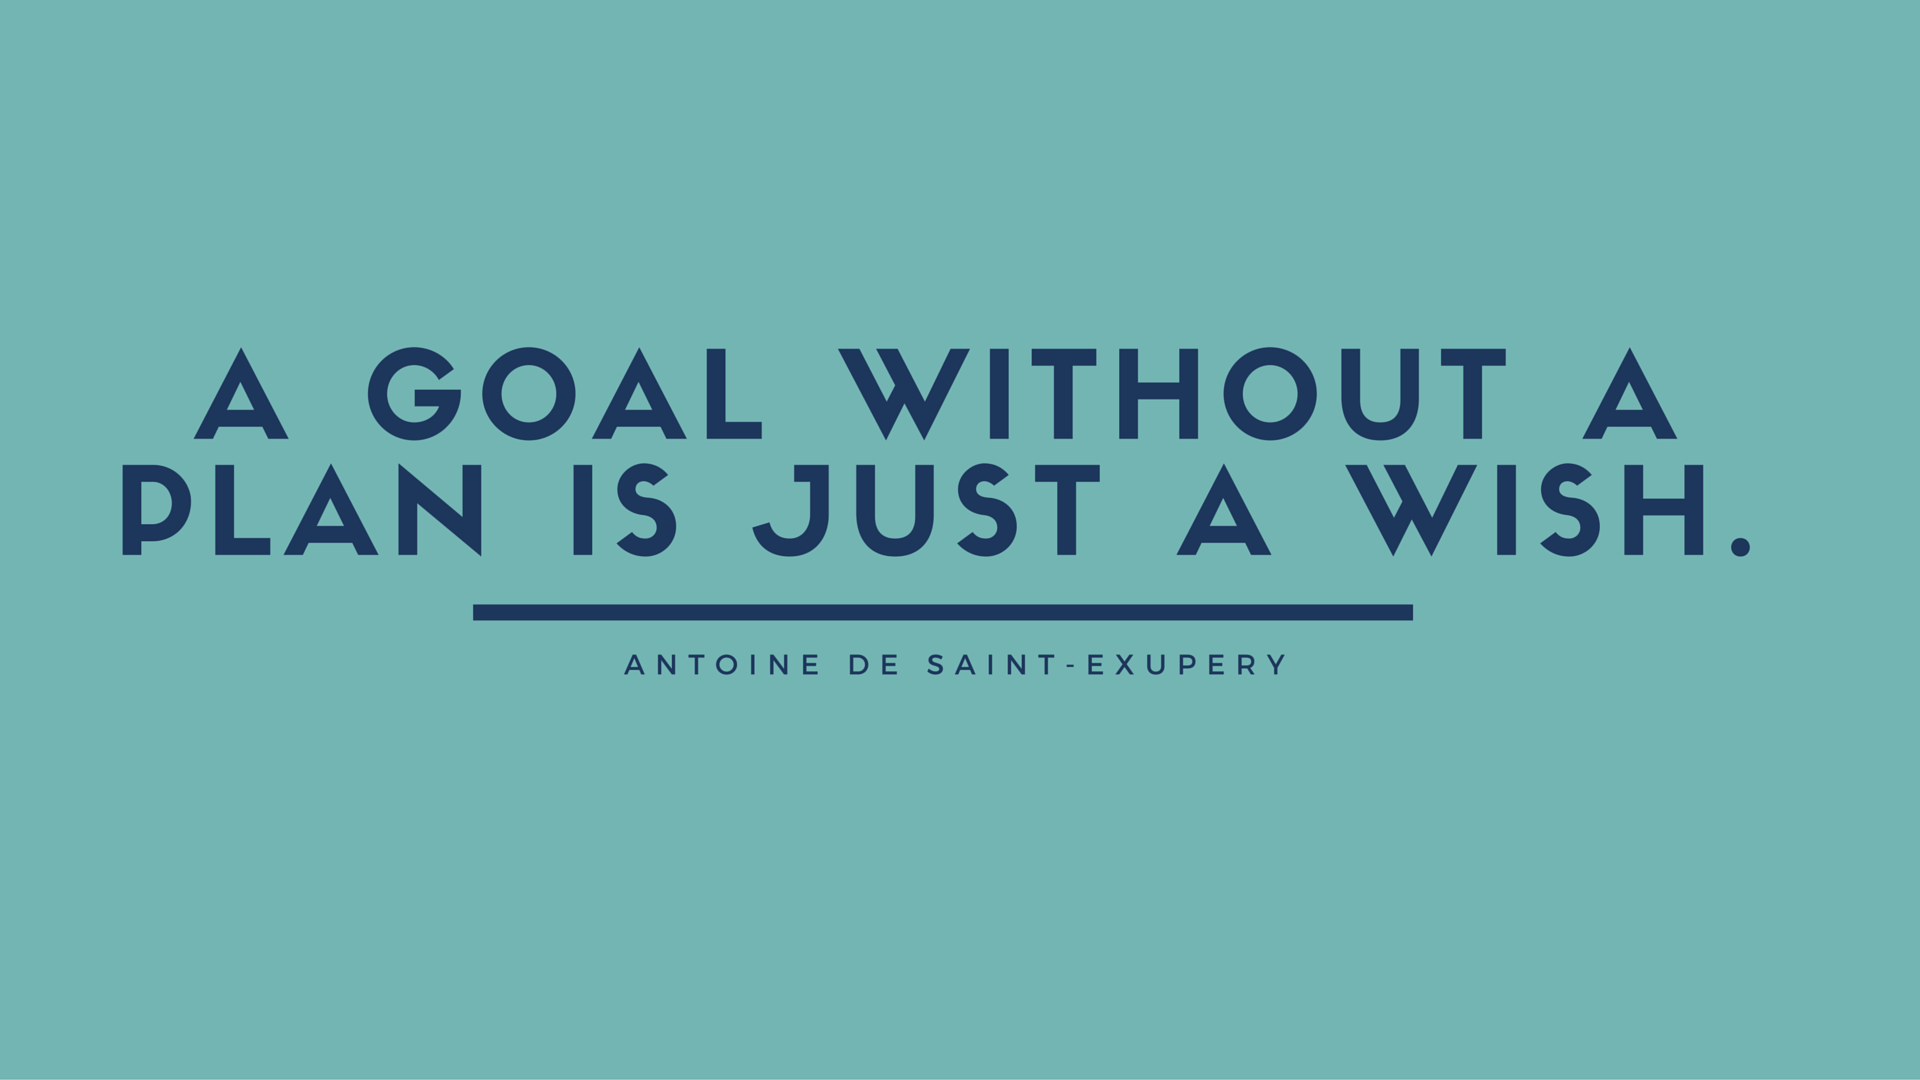 sample essay about goal in life